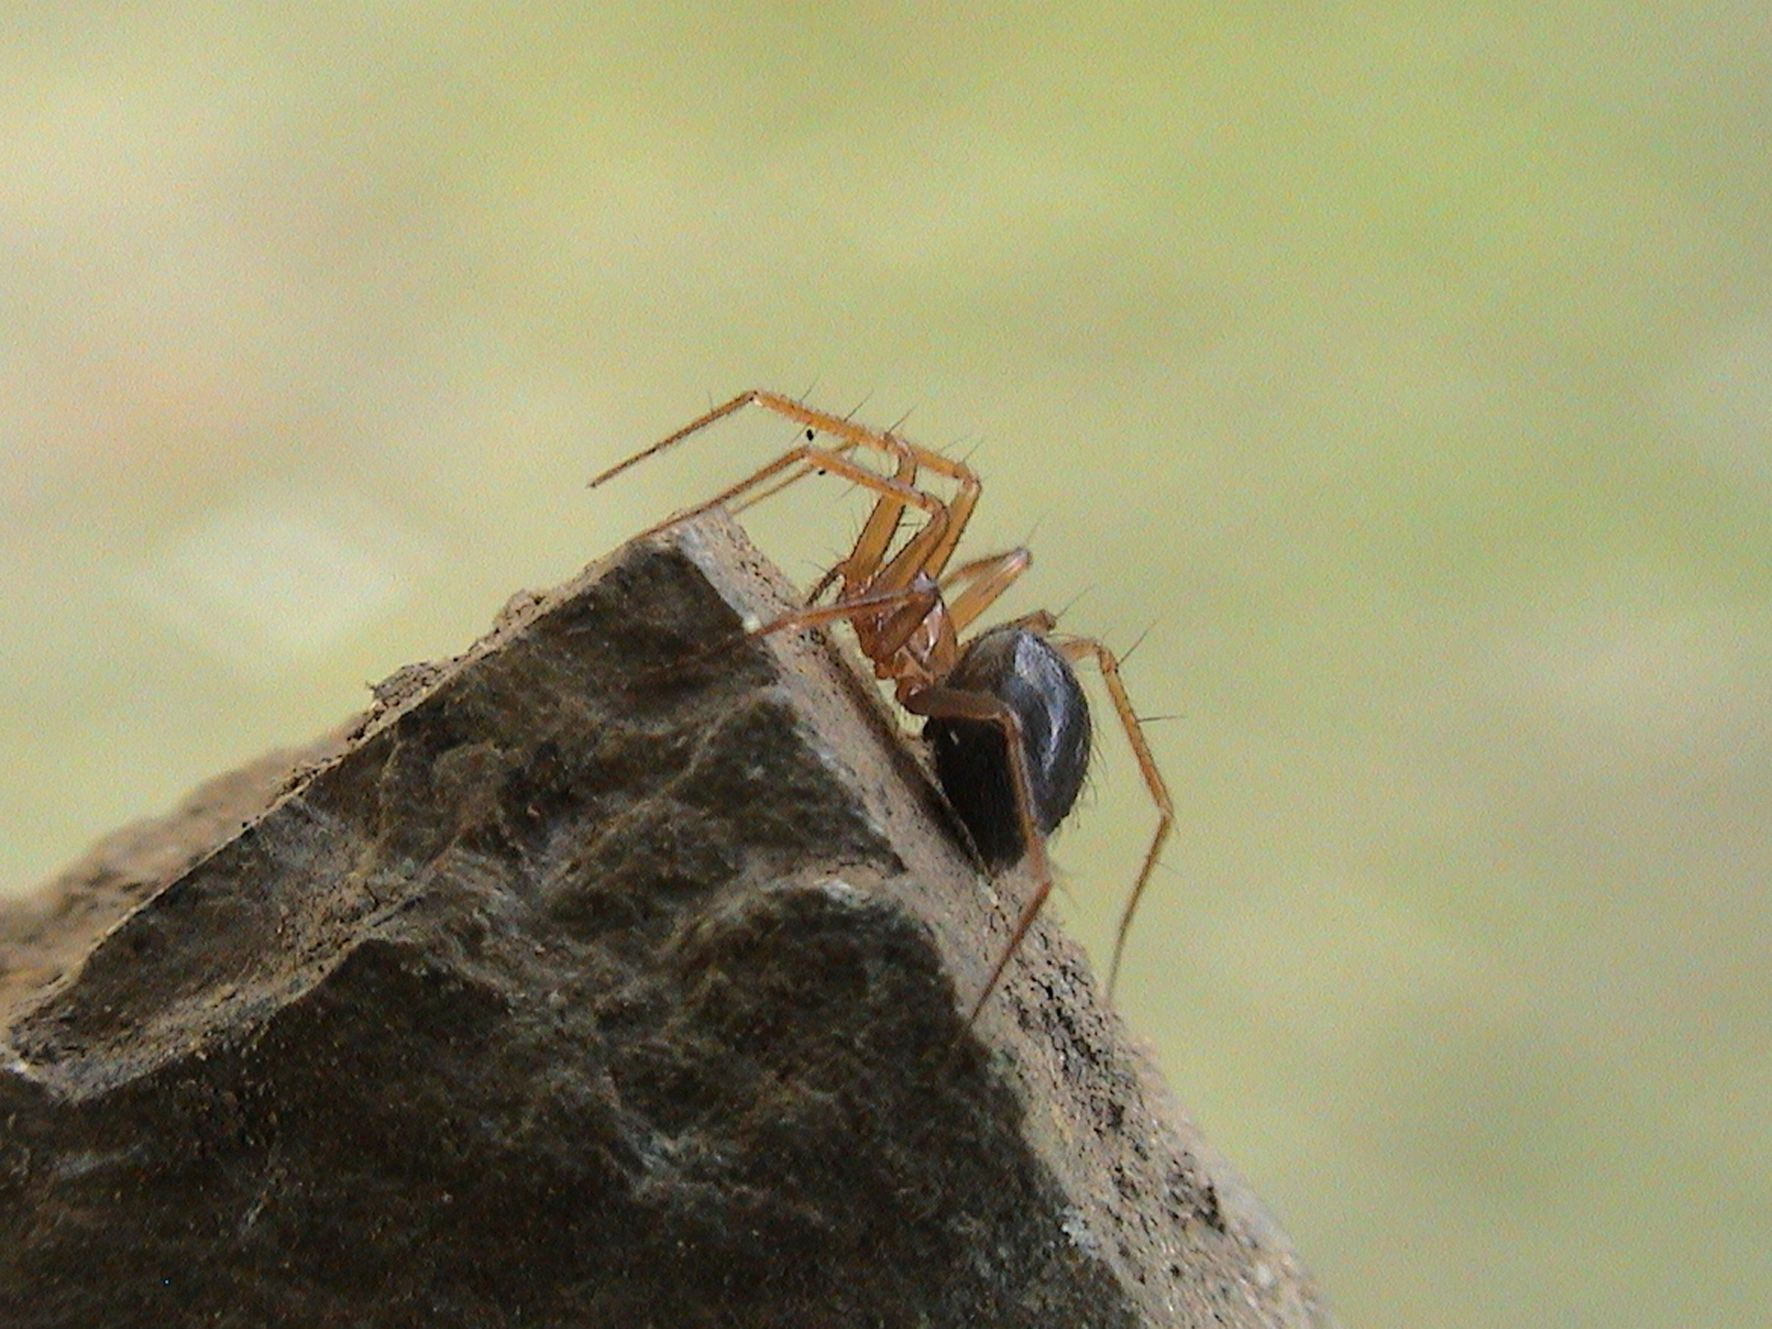 Britain's Rarest Spider Filmed Alive for First Time